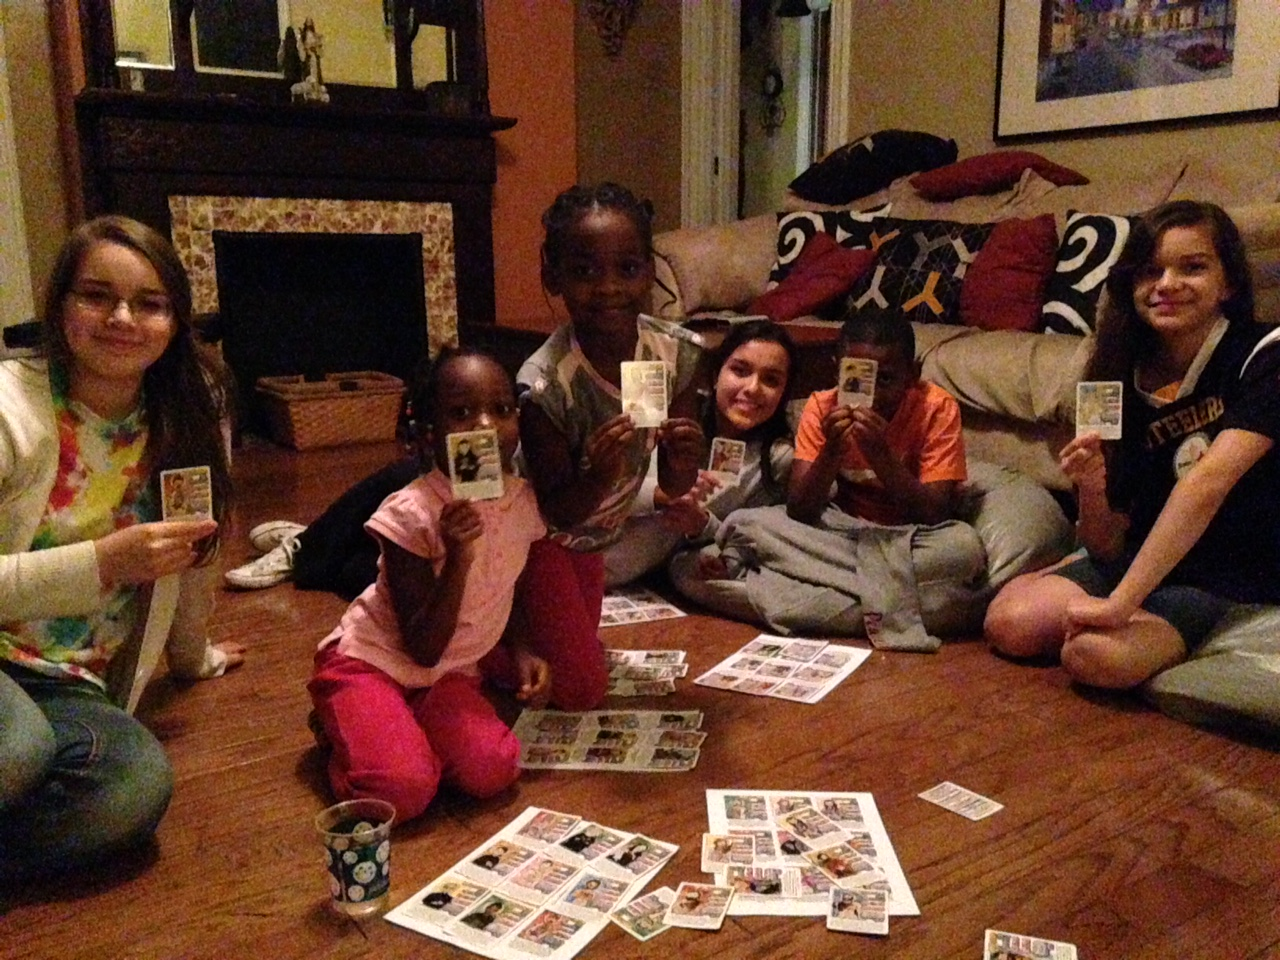 Xhonane family playing Super Saints